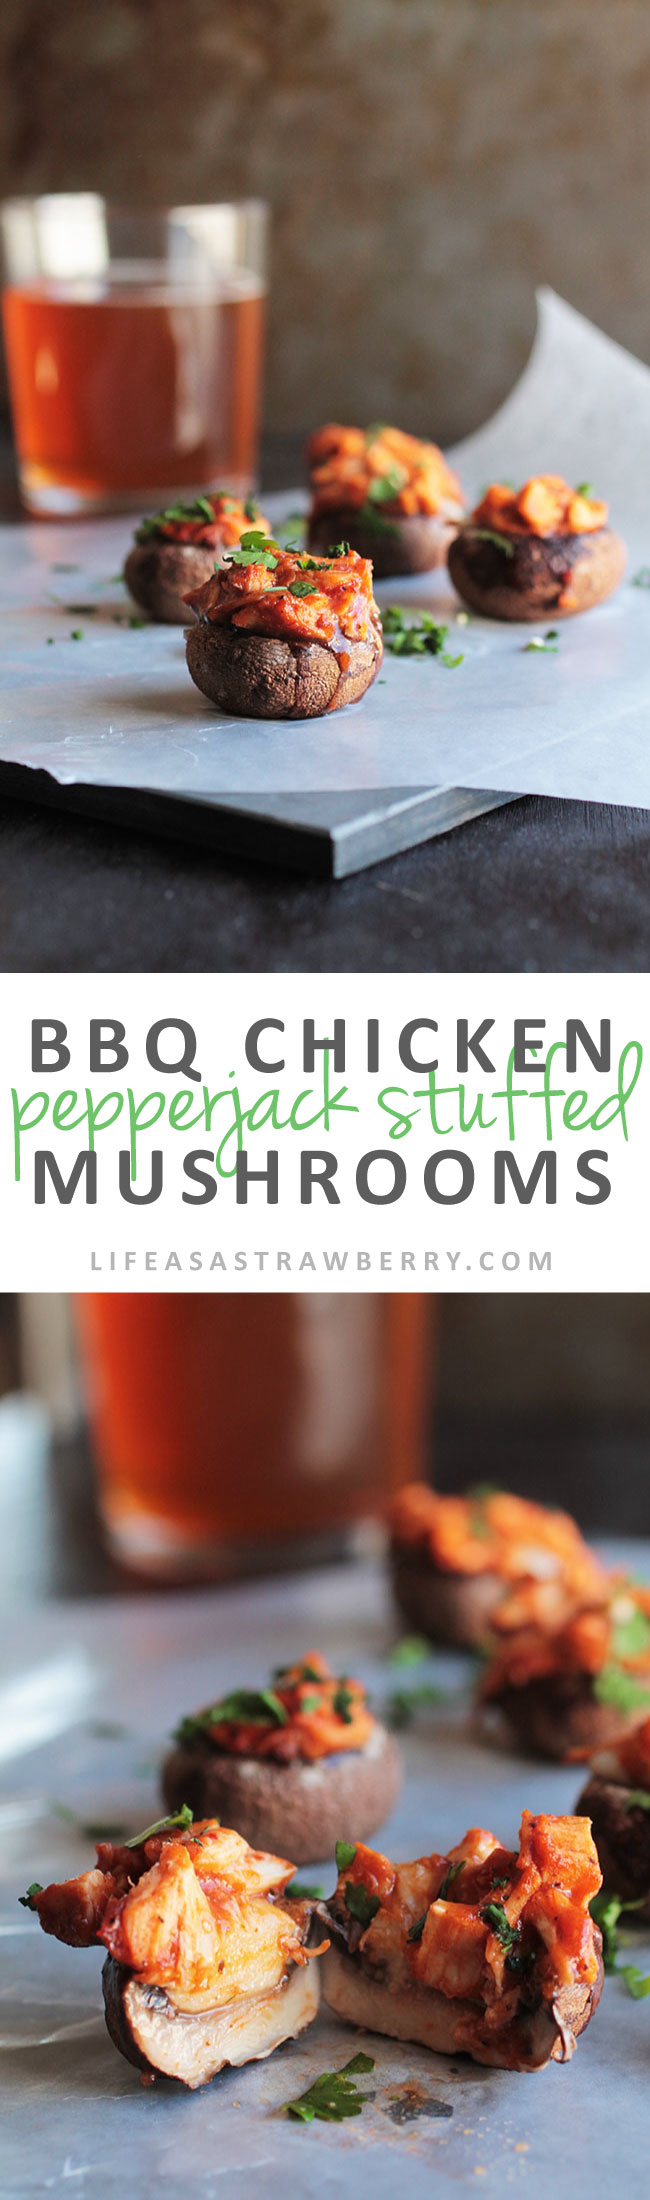 BBQ Chicken Pepper Jack Stuffed Mushrooms | This fun and easy appetizer recipe comes together in no time. Easy barbecue pulled chicken, spicy pepperjack cheese, fresh cilantro and earthy portobello mushroom caps come together for a fun twist on classic stuffed mushrooms. Perfect for entertaining!